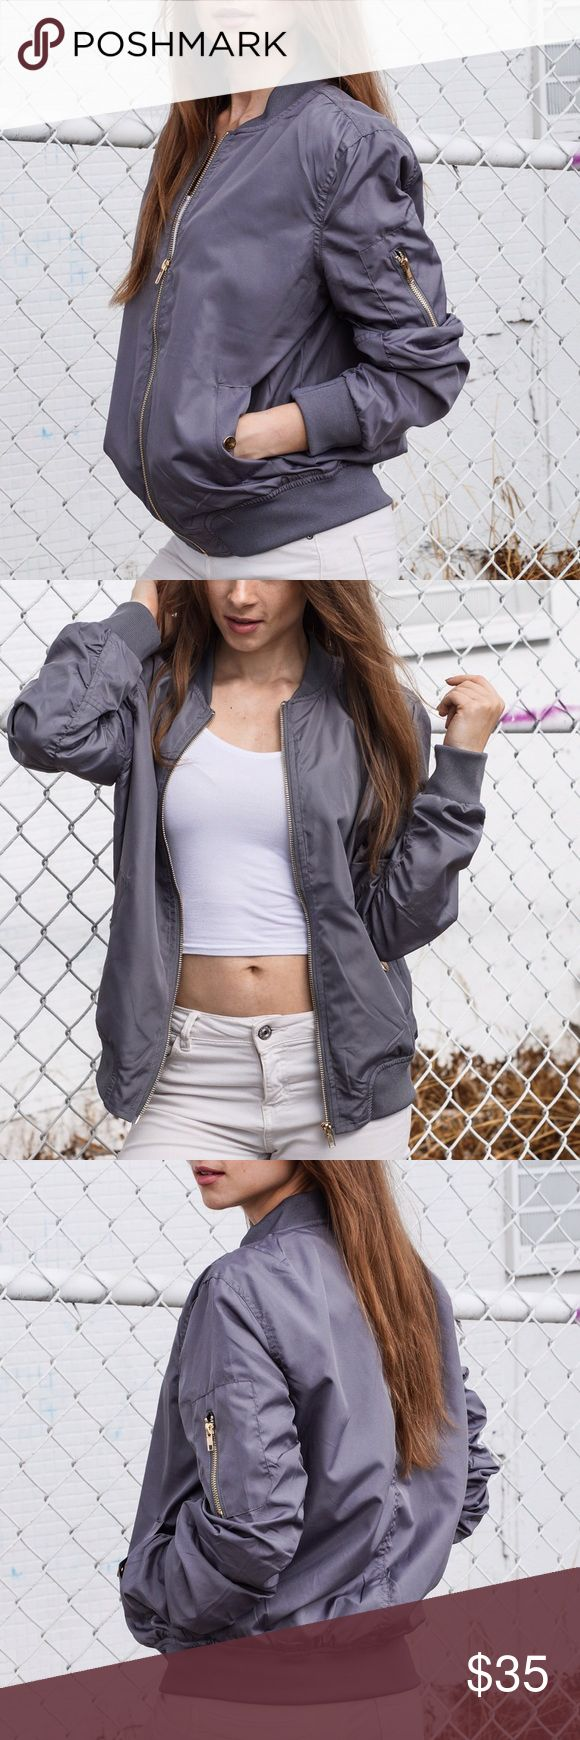 Grey bomber jacket Brand new grey bomber jacket! Jackets & Coats